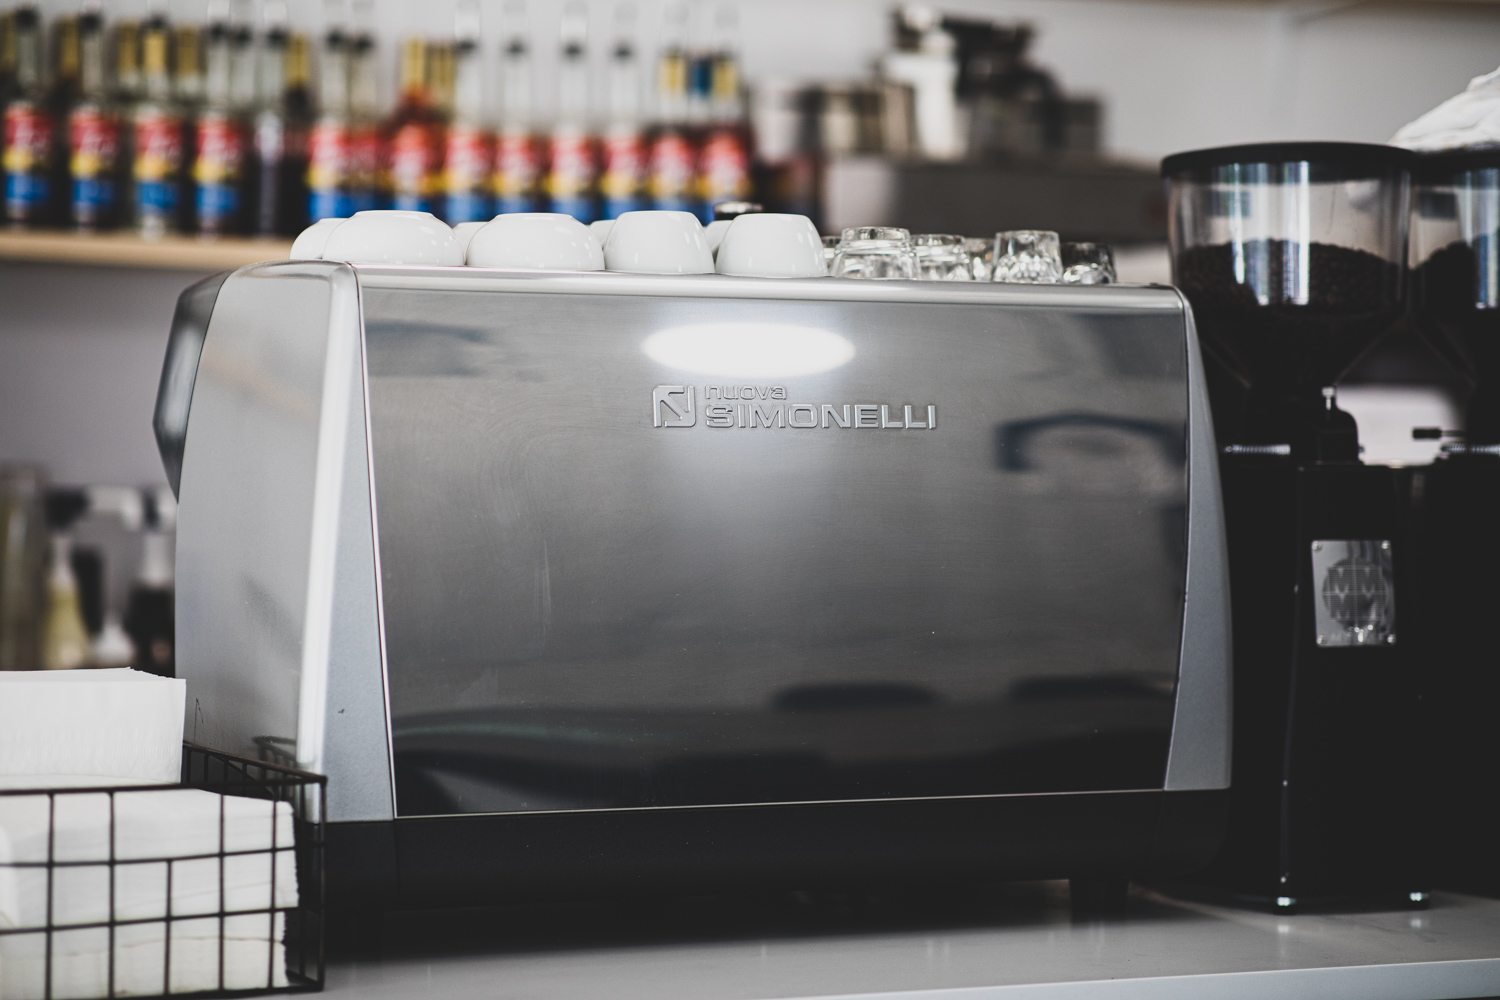 Tools of the trade:  Nuova Simonelli  espresso machine.